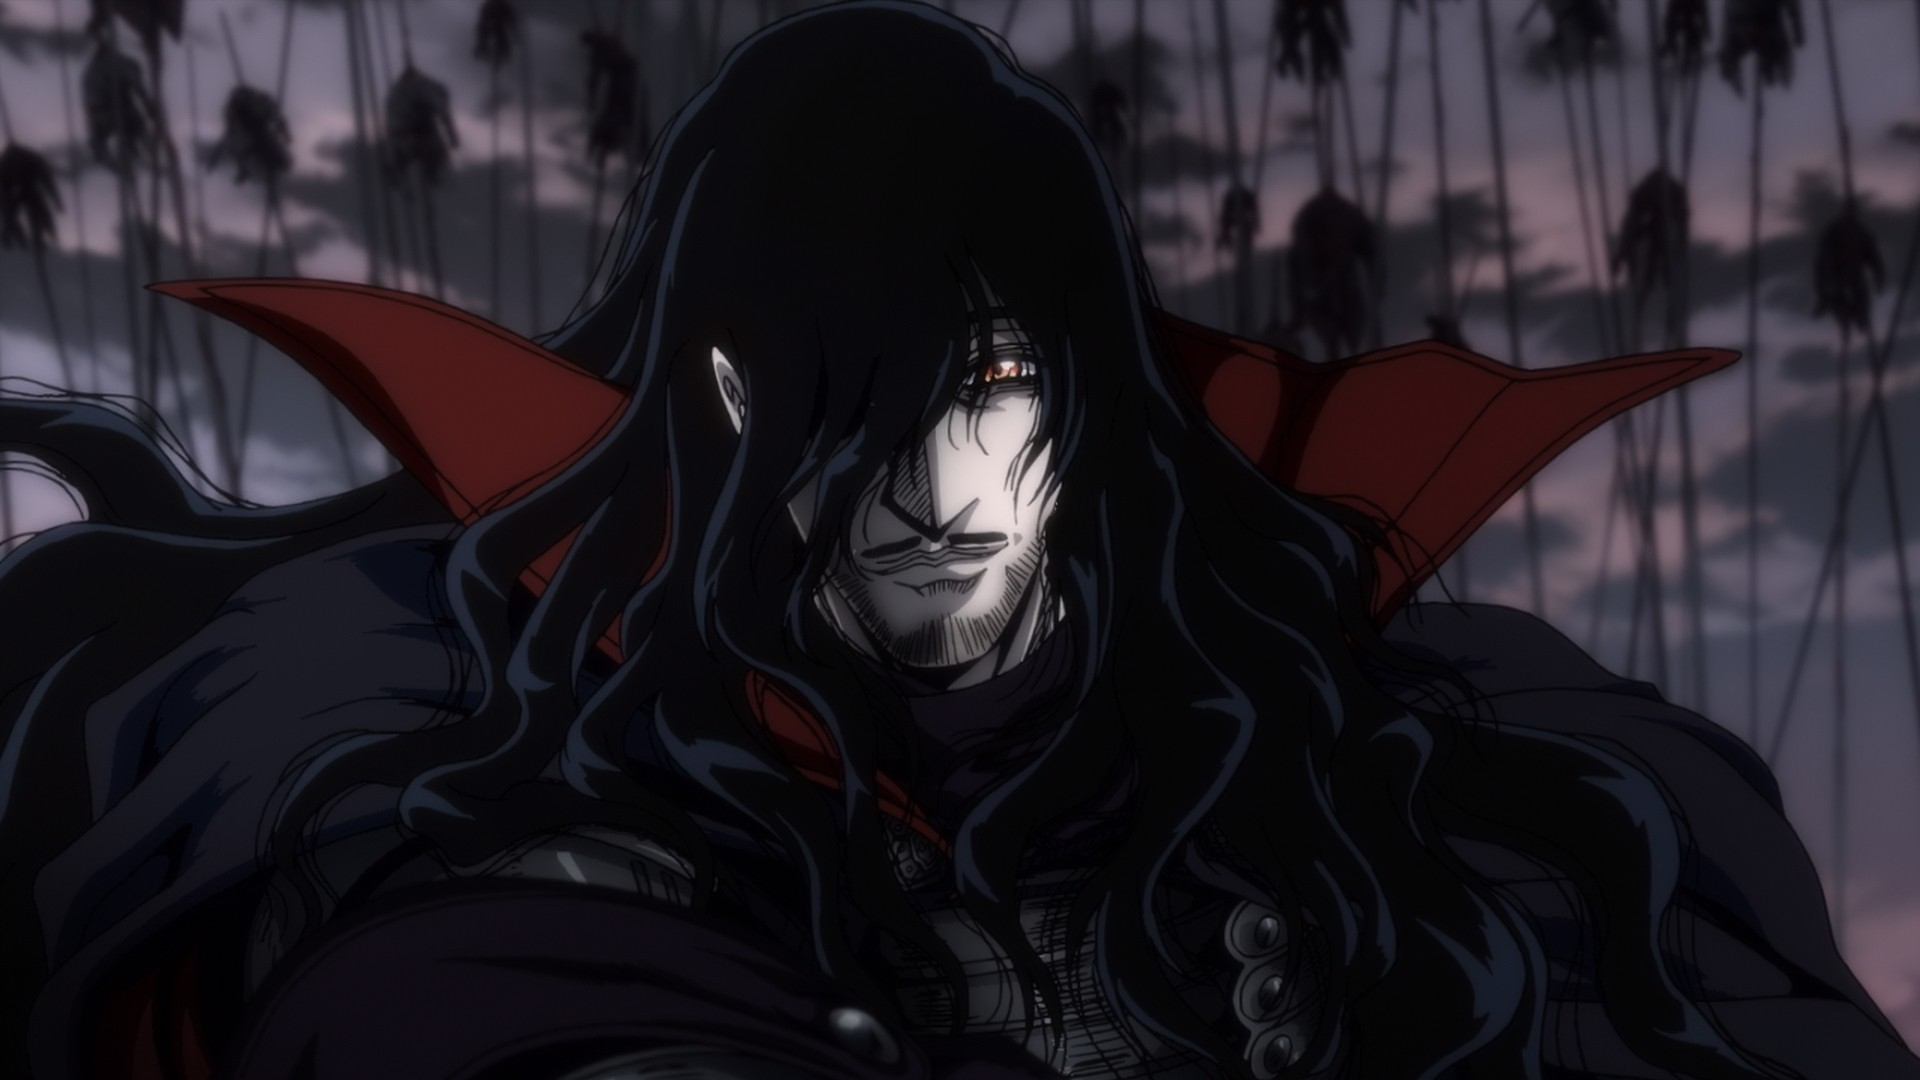 Res: 1920x1080, wallpaper Hellsing